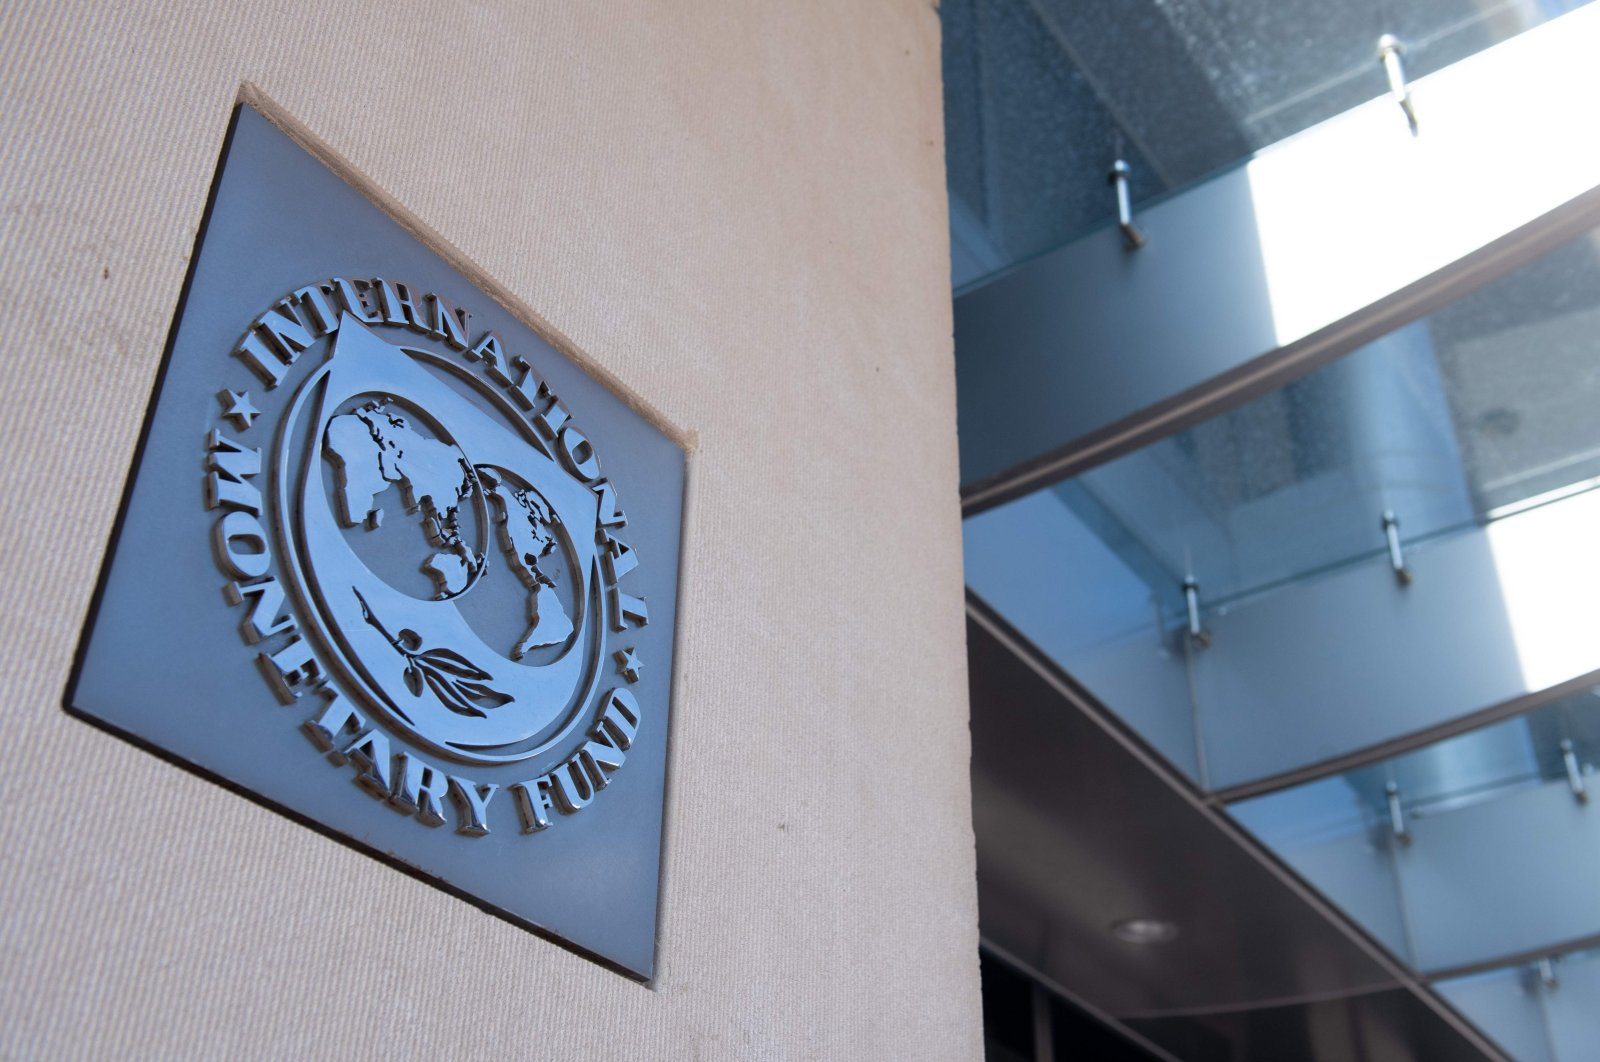 A sign is seen outside the headquarters of the International Monetary Fund (IMF) as the IMF and World Bank hold their spring meetings virtually due to the outbreak of COVID-19, in Washington, D.C., April 15, 2020. (AFP Photo)